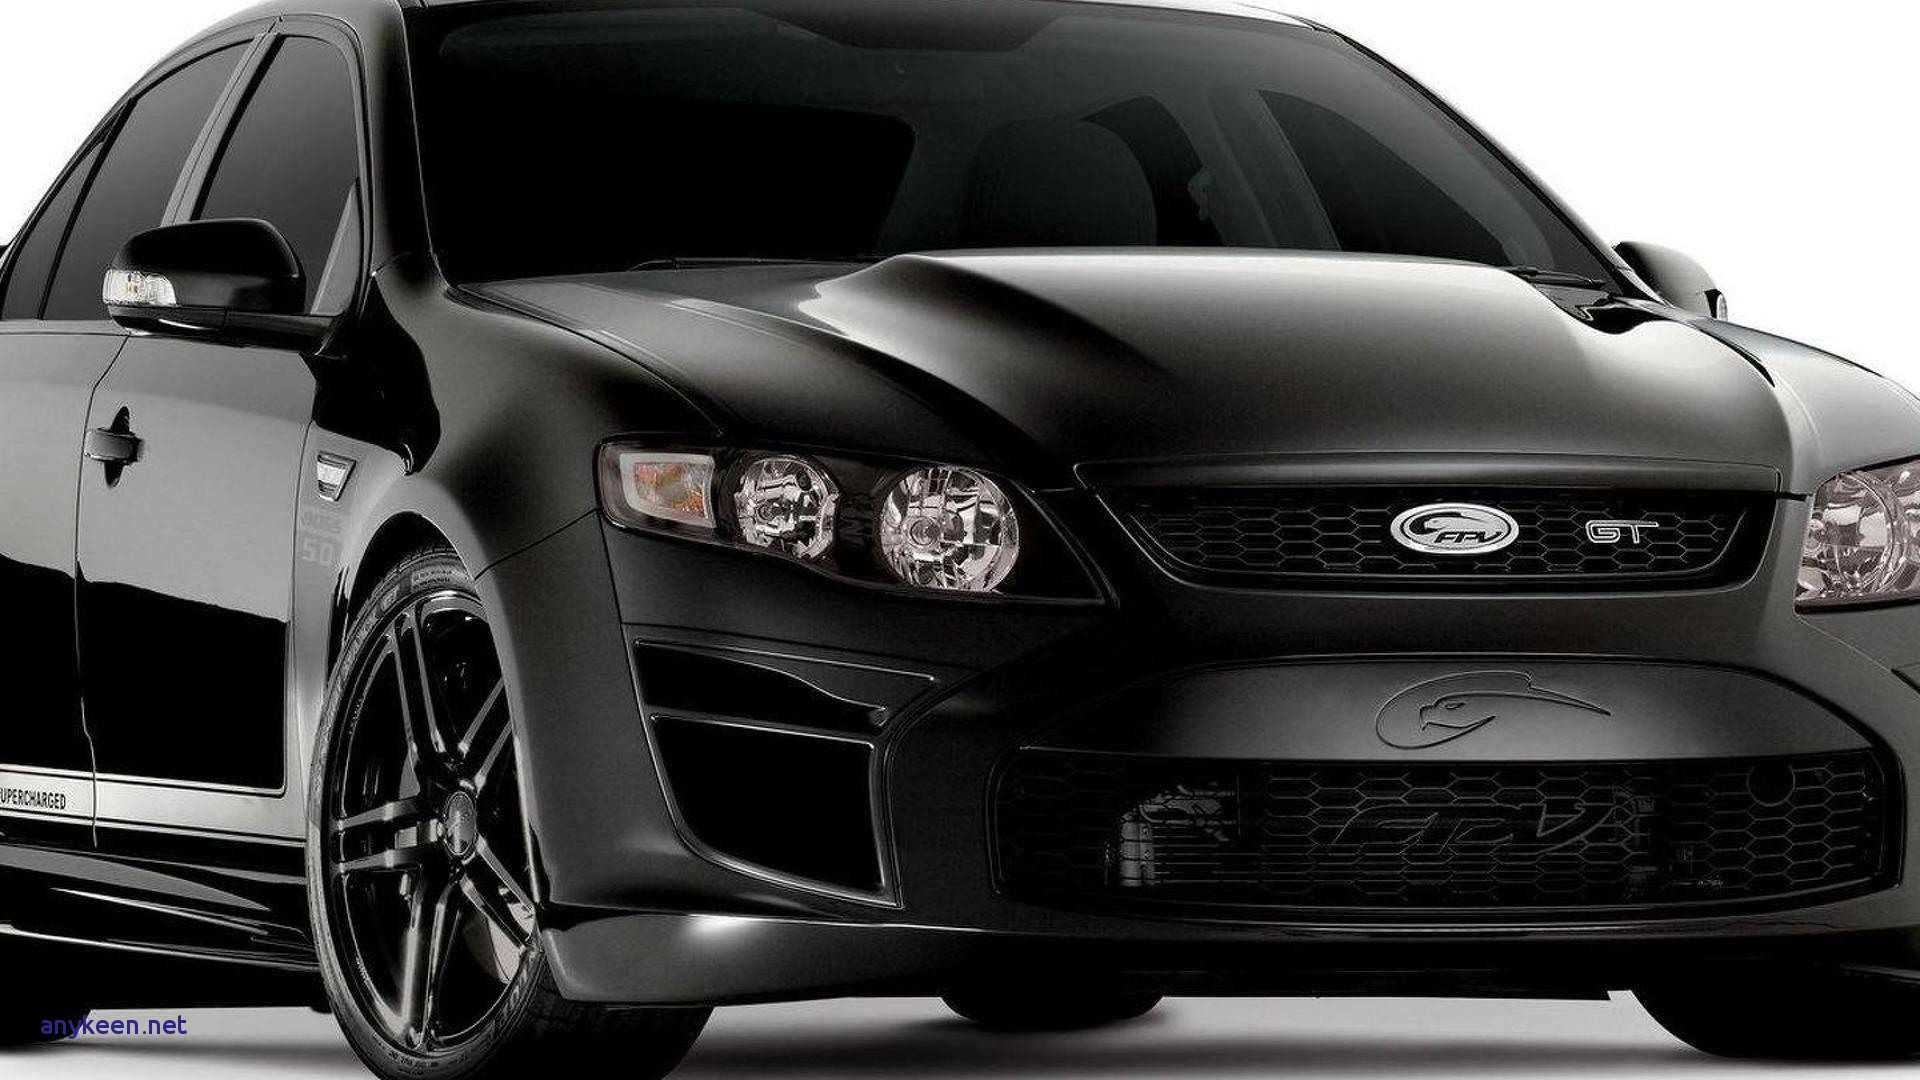 96 Best Review 2020 Ford Falcon Gt Prices for 2020 Ford Falcon Gt